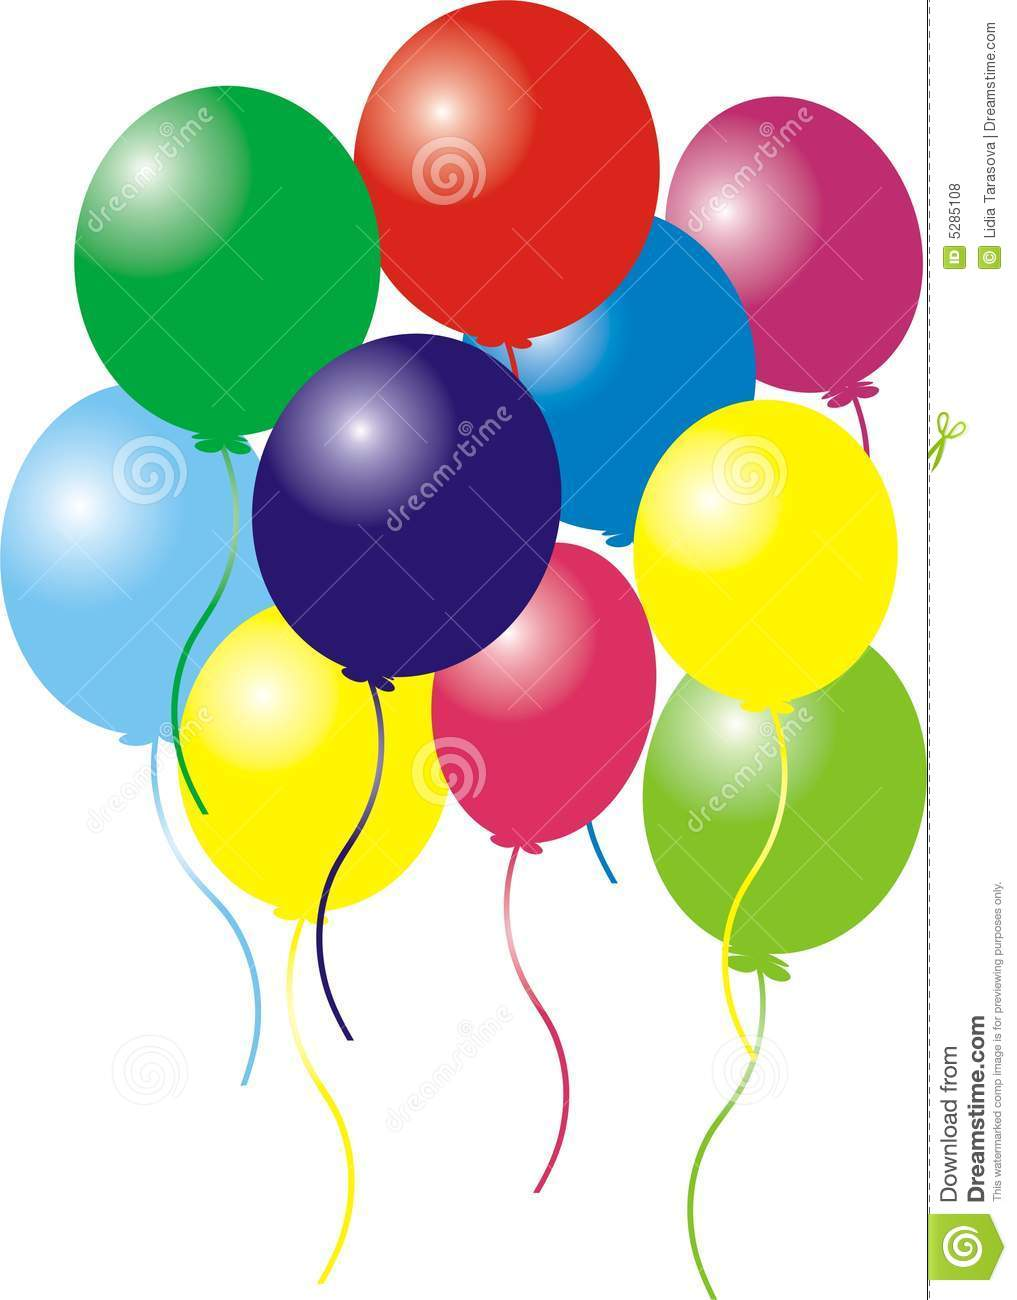 Birthday Balloons Royalty Free Stock Photos Image 5285108